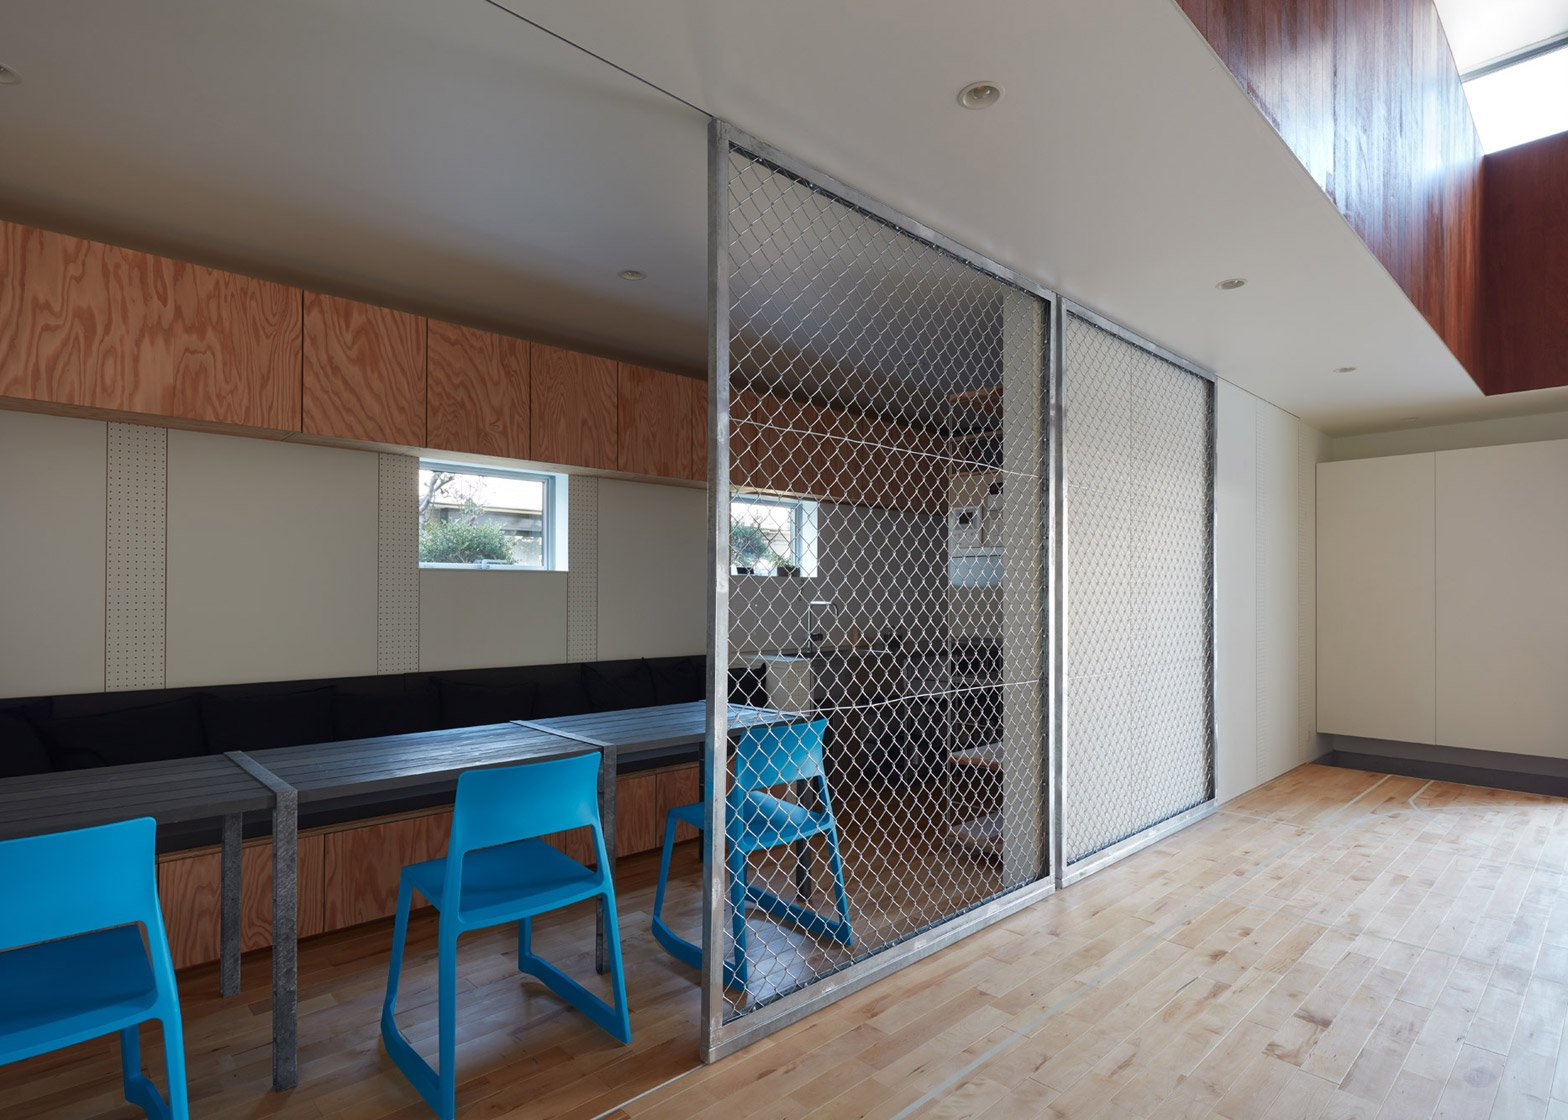 Koizumi Sekkei designs house in Japan with basketball court at its ...